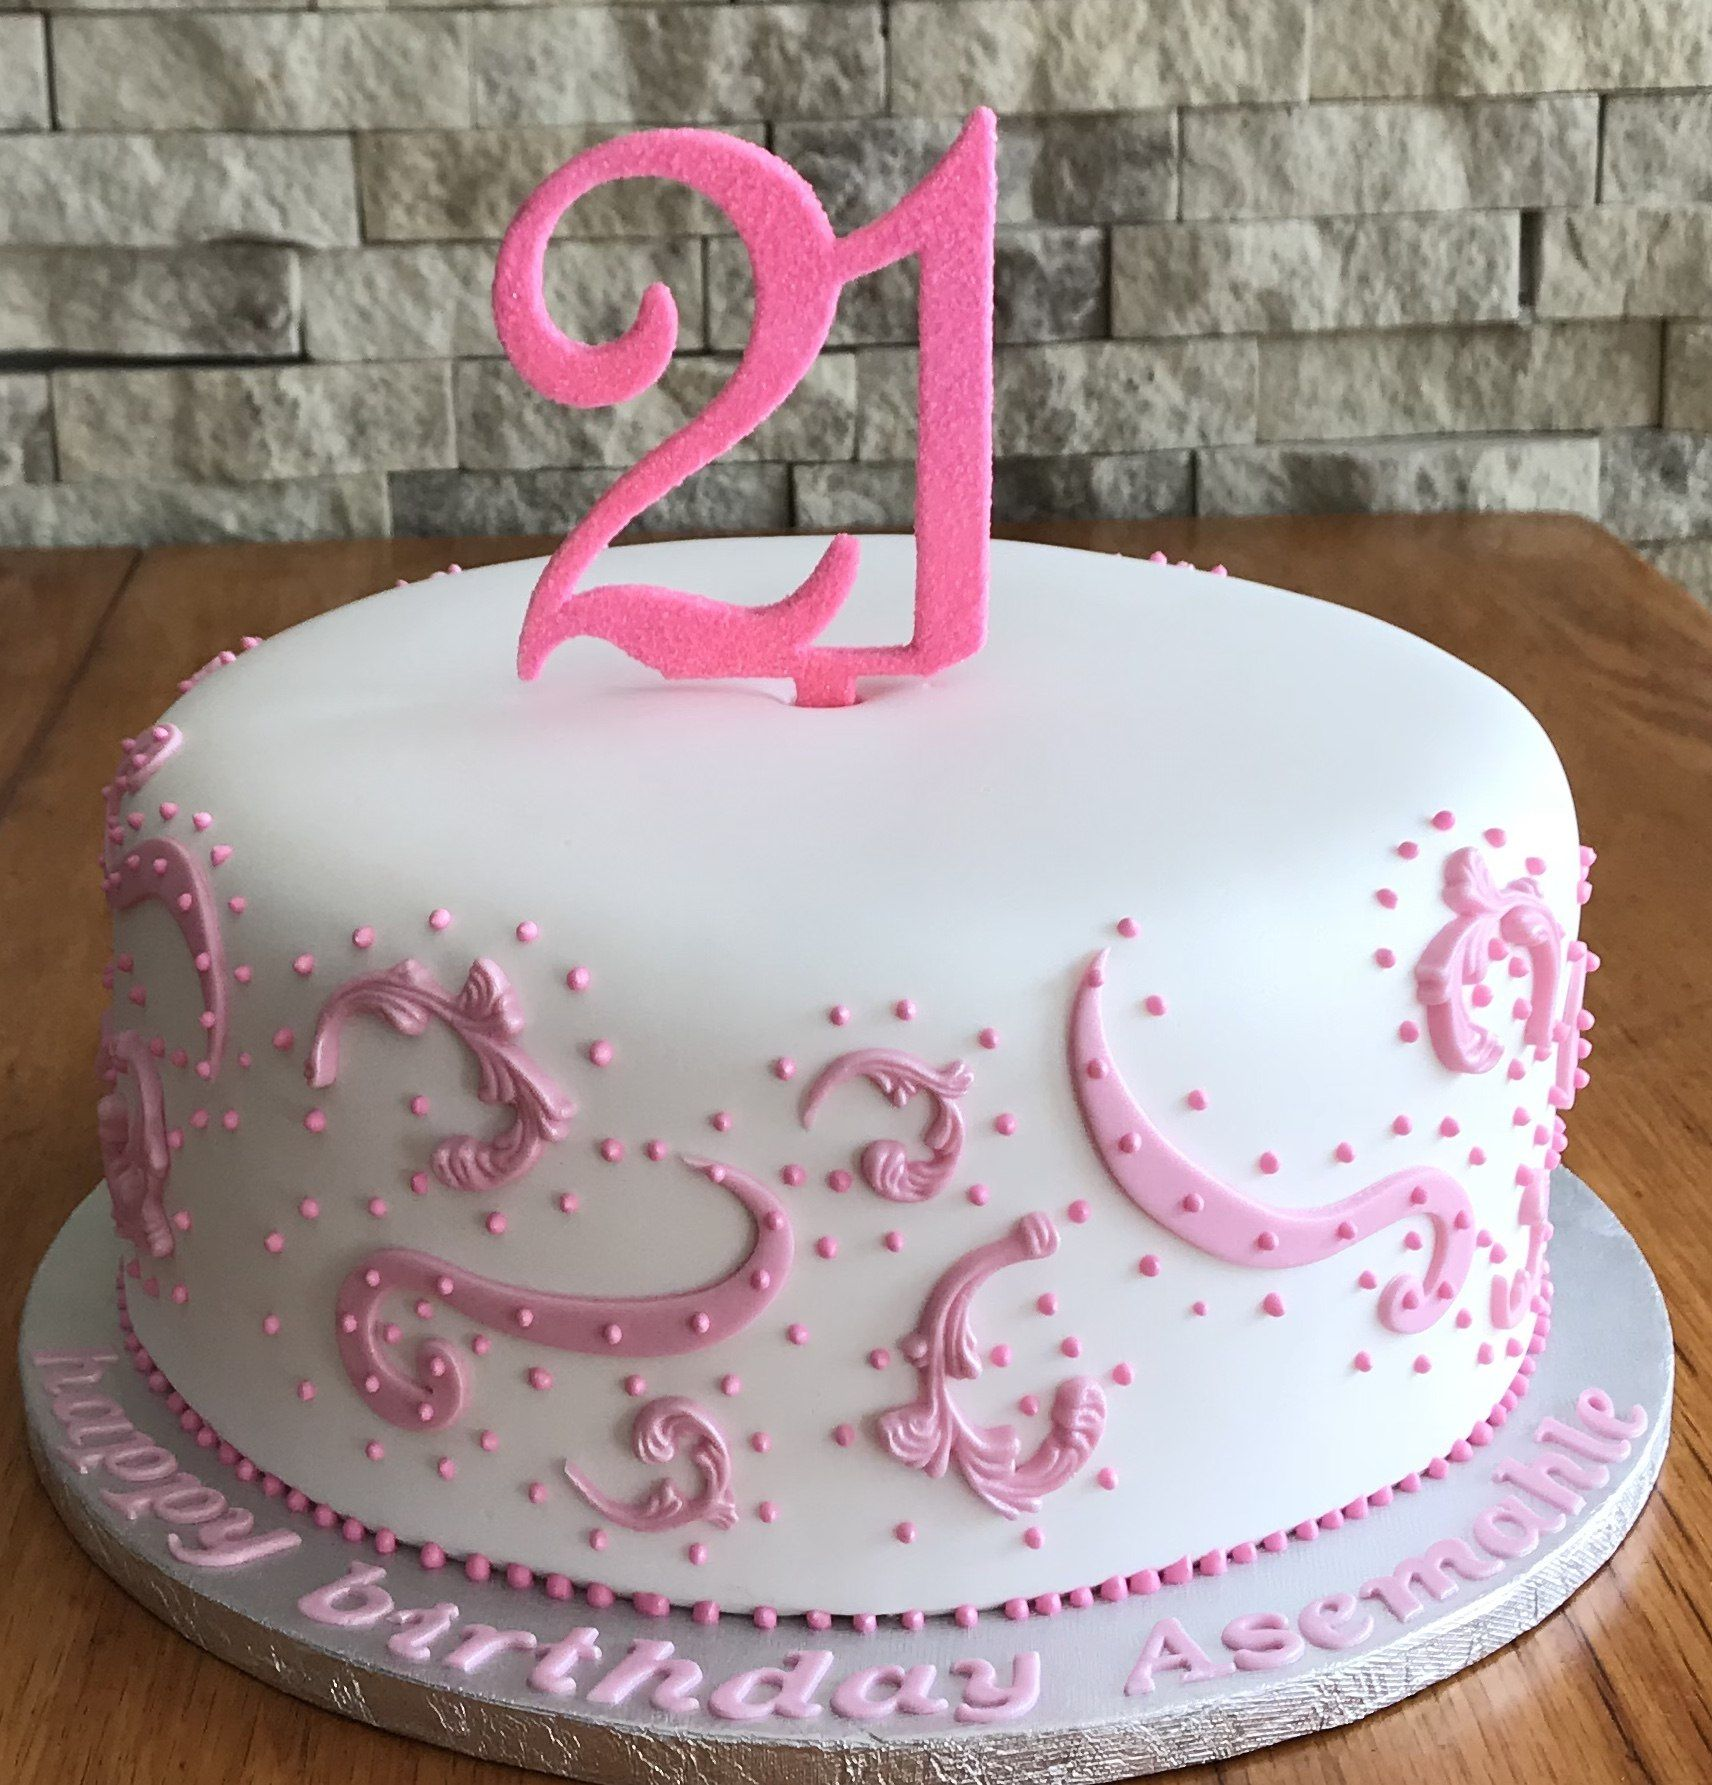 25 Amazing Picture Of 21st Birthday Cake Ideas For Her With